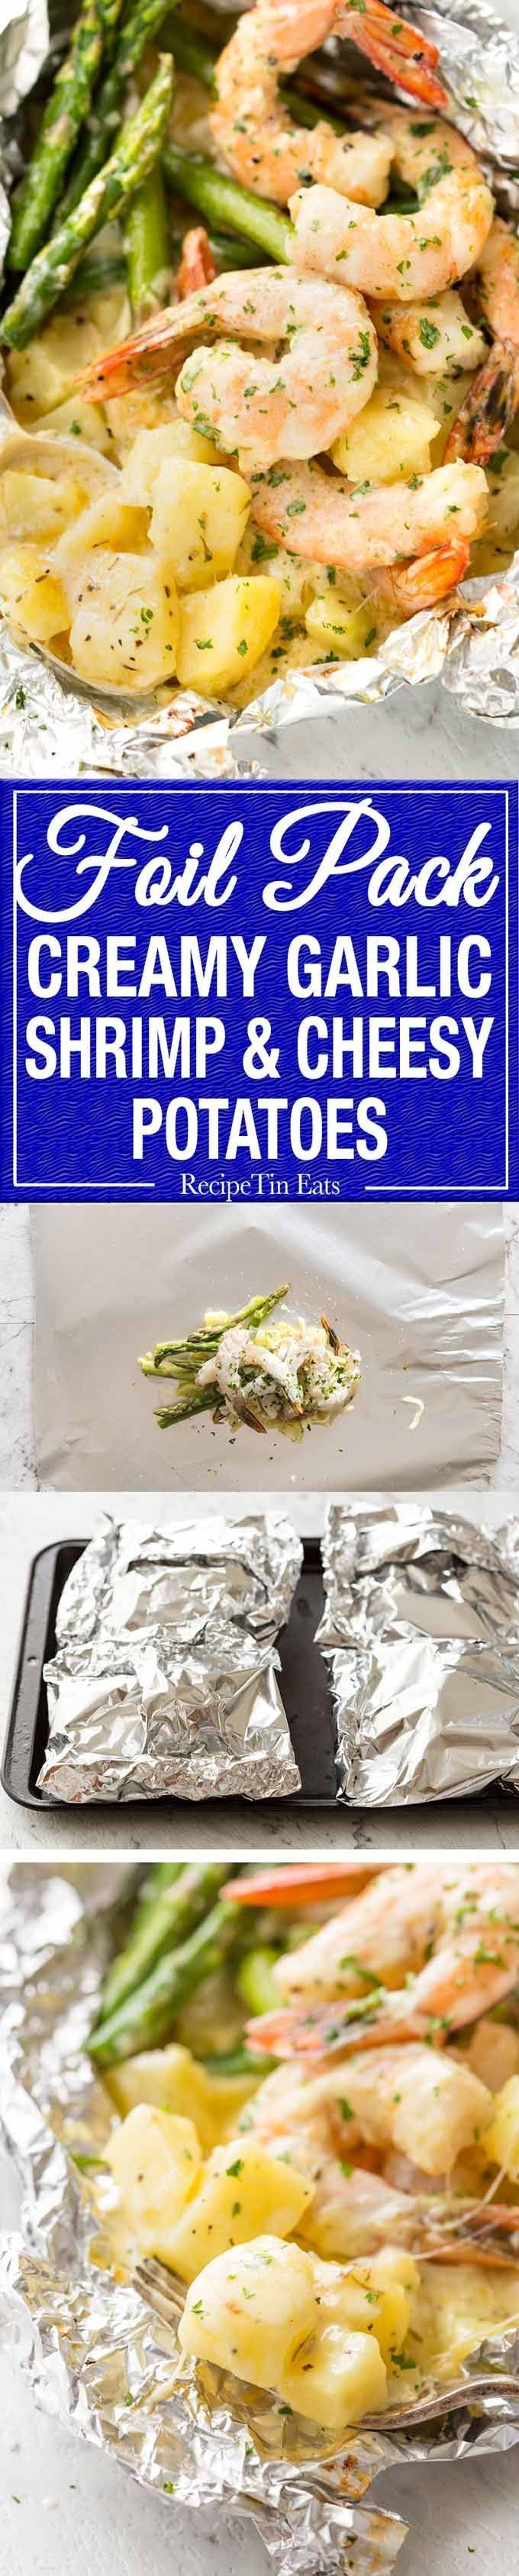 Foil Pack Creamy Garlic Shrimp and Cheesy Potatoes